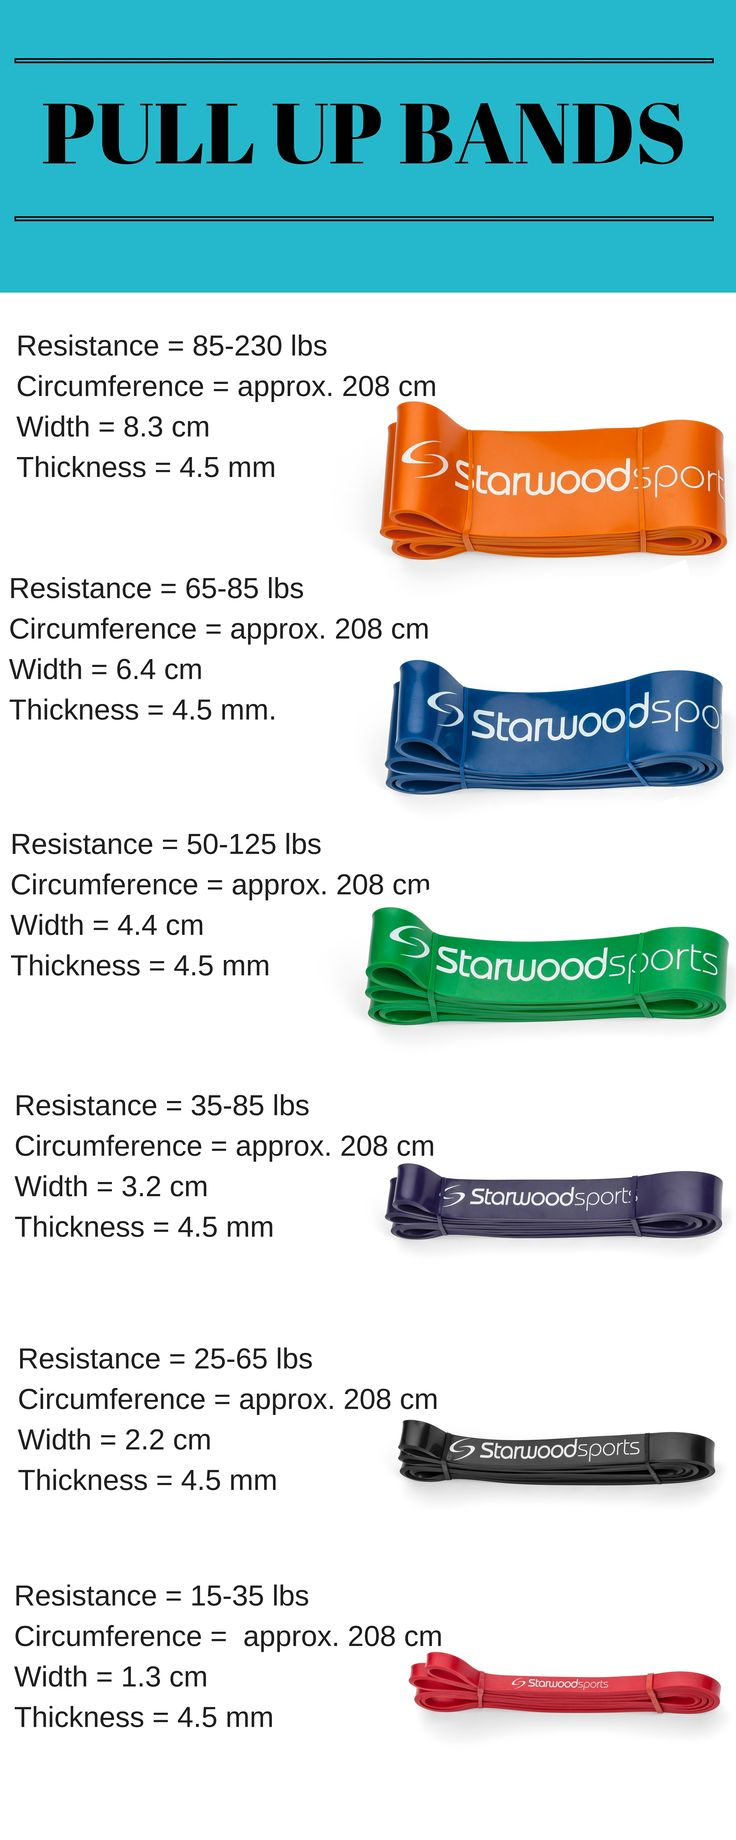 Resistance Band / Pull Up Band - Premium Exercise Band for Crossfit, Powerlifting & Assisted Pull Ups / Mobility Band (One Per Set) - For Men and Women - Lifetime Guarantee http://www.amazon.co.uk/Starwood-Sports/pages/default?pageId=TO16EMKD1REHXTW&channel=https://uk.pinterest.com/starwoodsports/